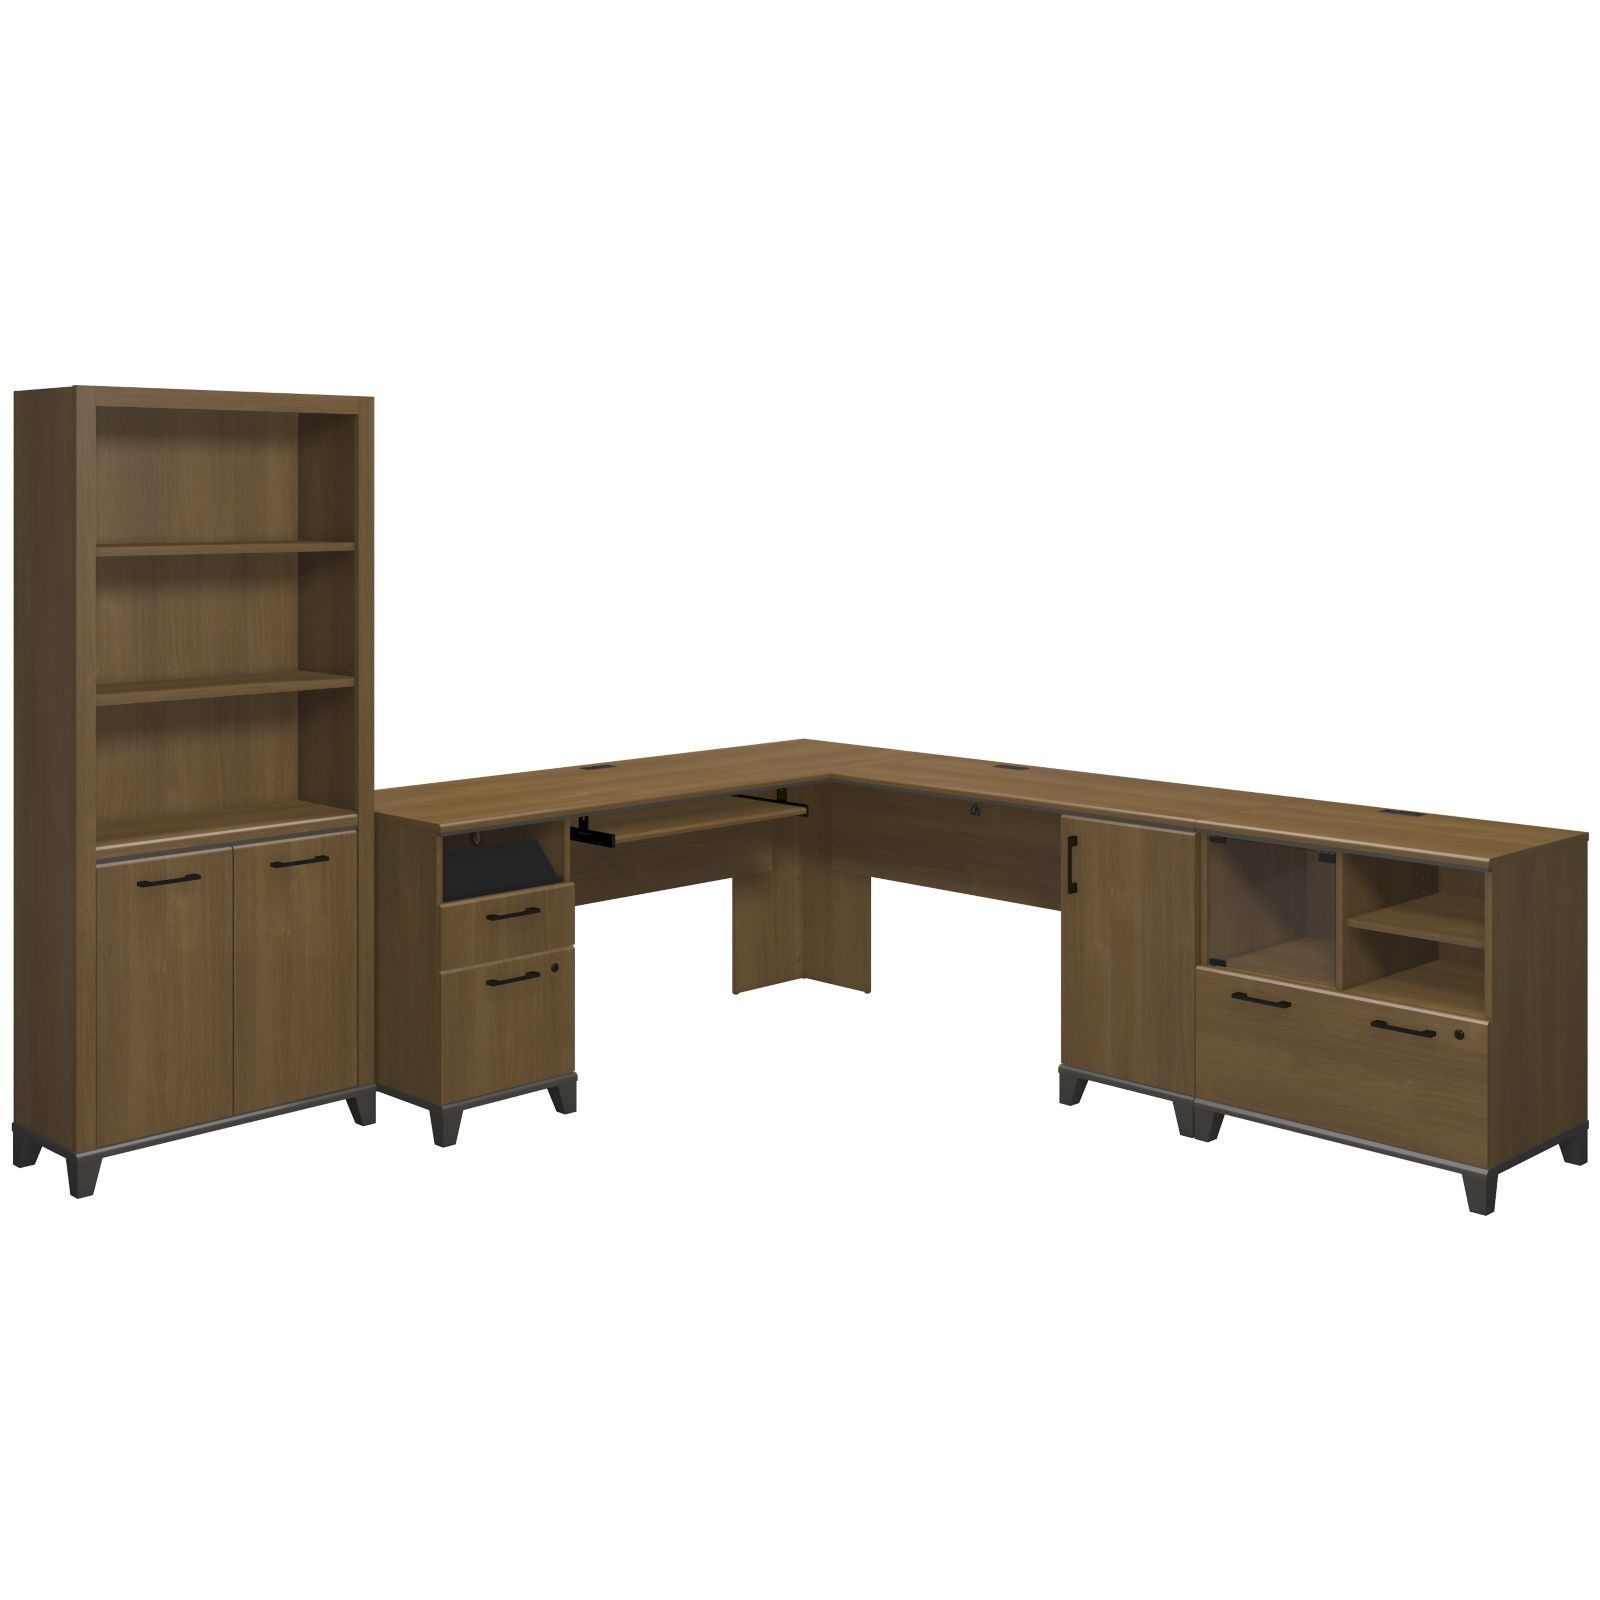 Achieve L Shaped Desk With Bookcase And Printer